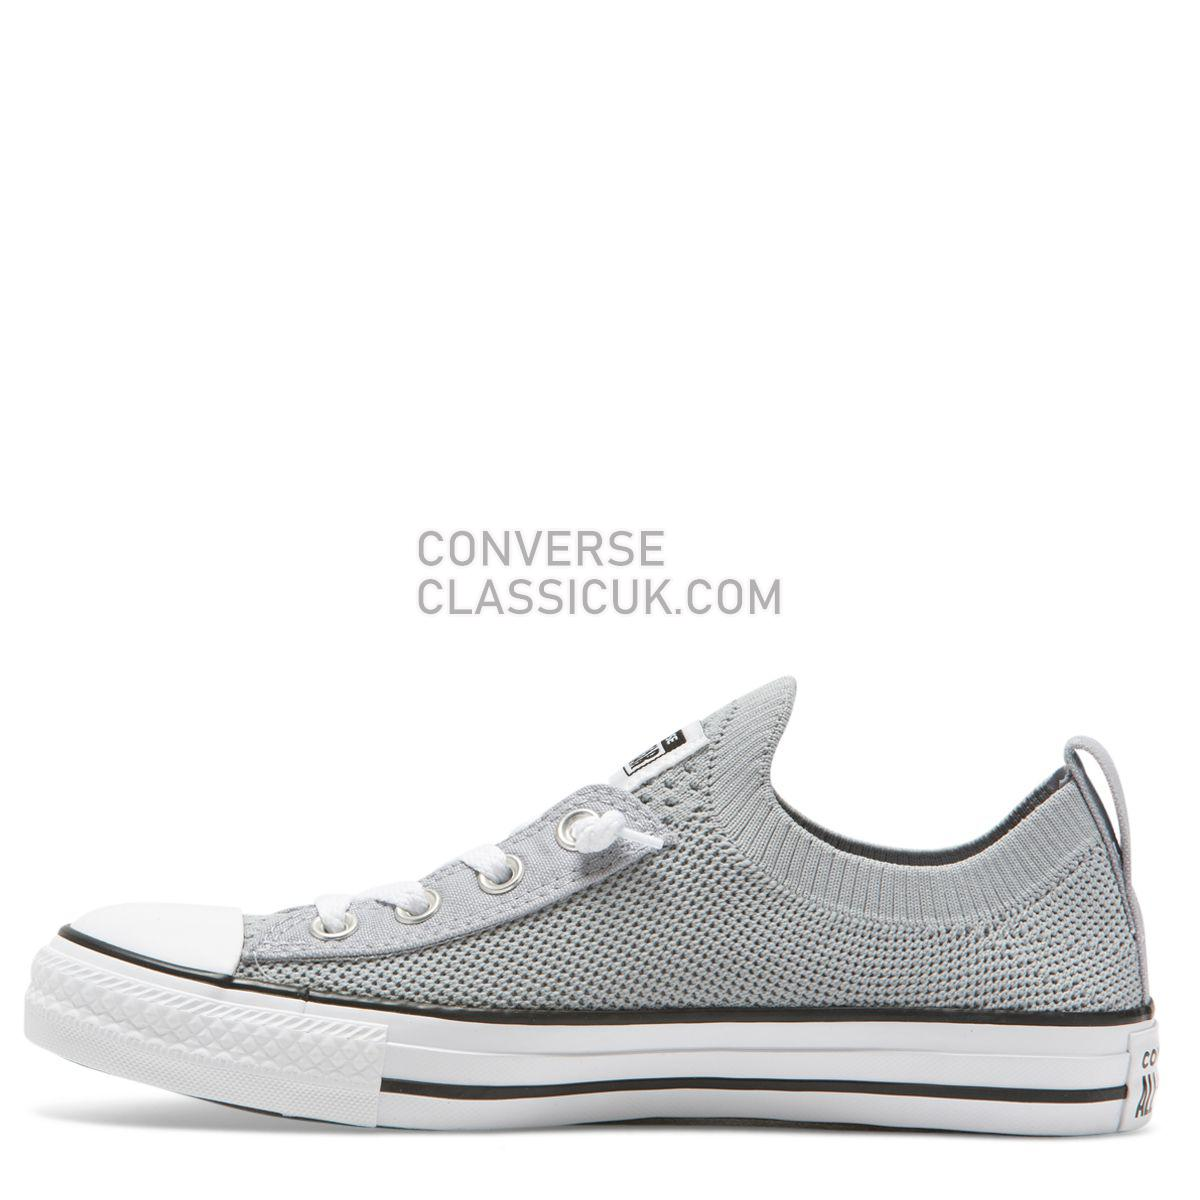 Converse Chuck Taylor All Star Shoreline Knit Slip Low Top Wolf Grey Womens 565232 Wolf Grey/White/Black Shoes